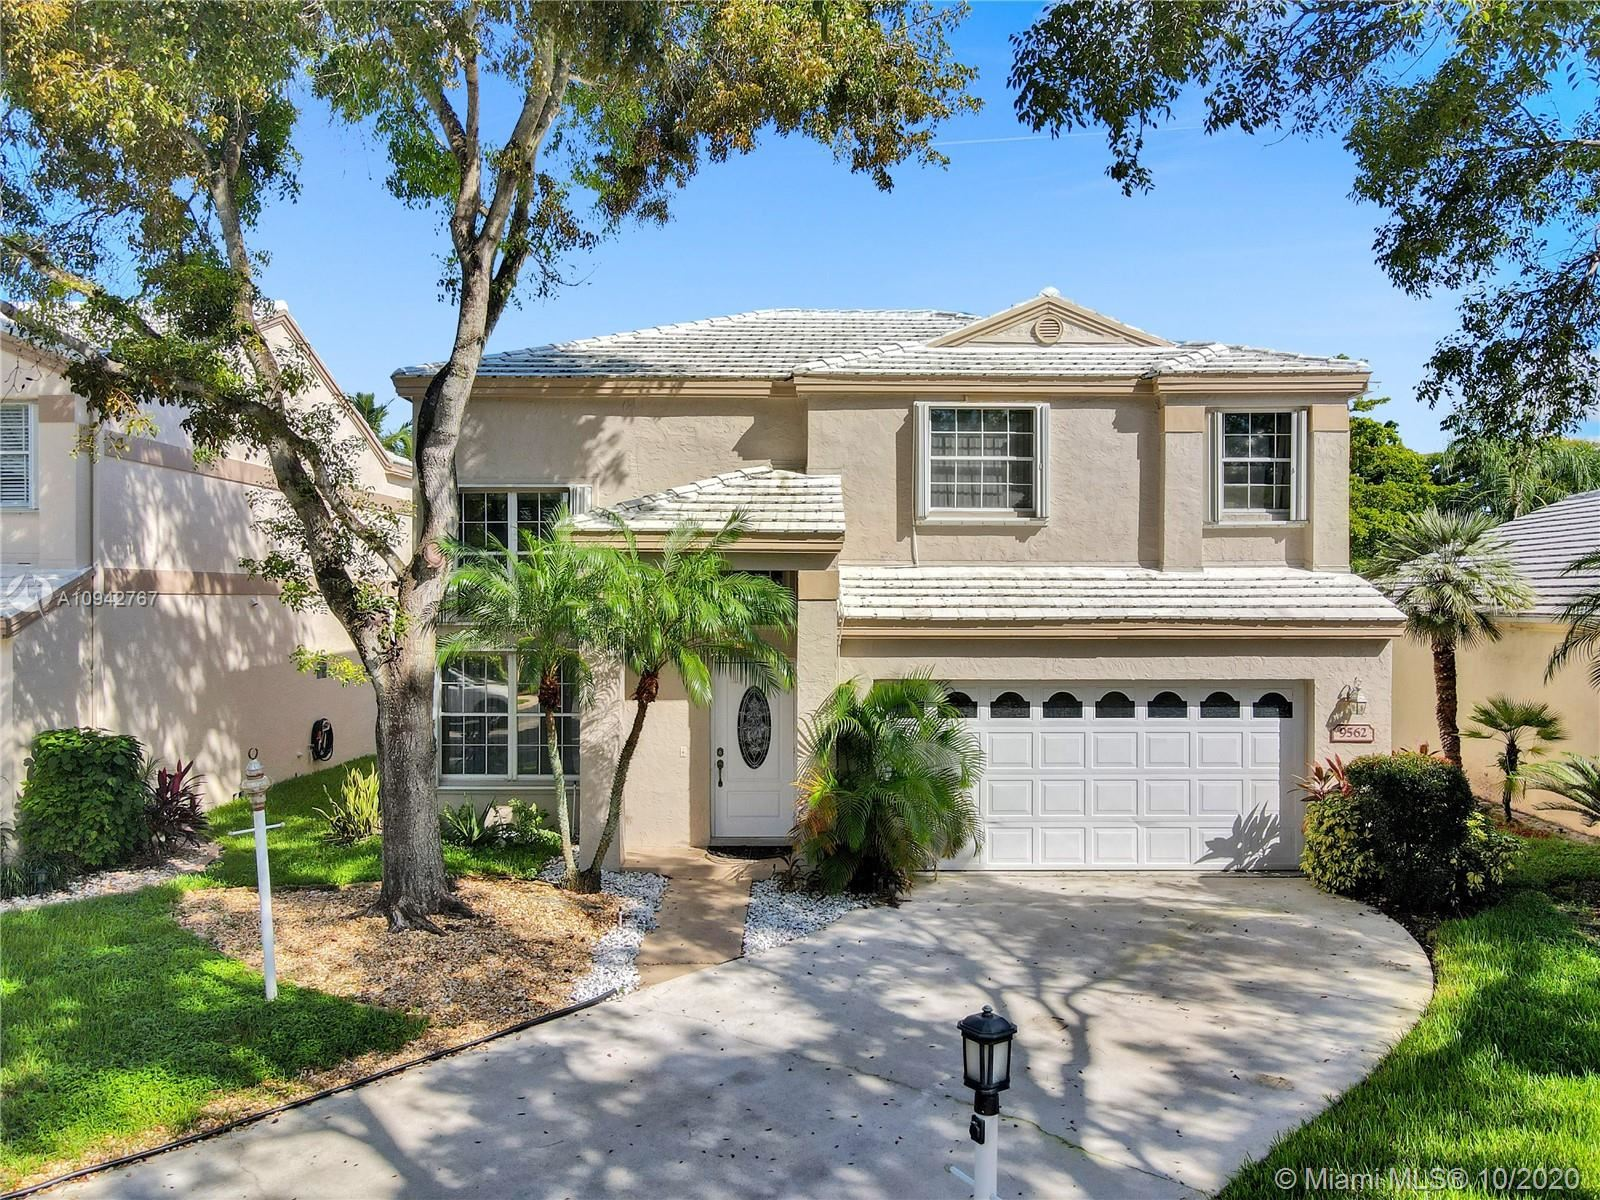 9562 NW 8th Cir, Plantation, FL 33324 - #: A10942767